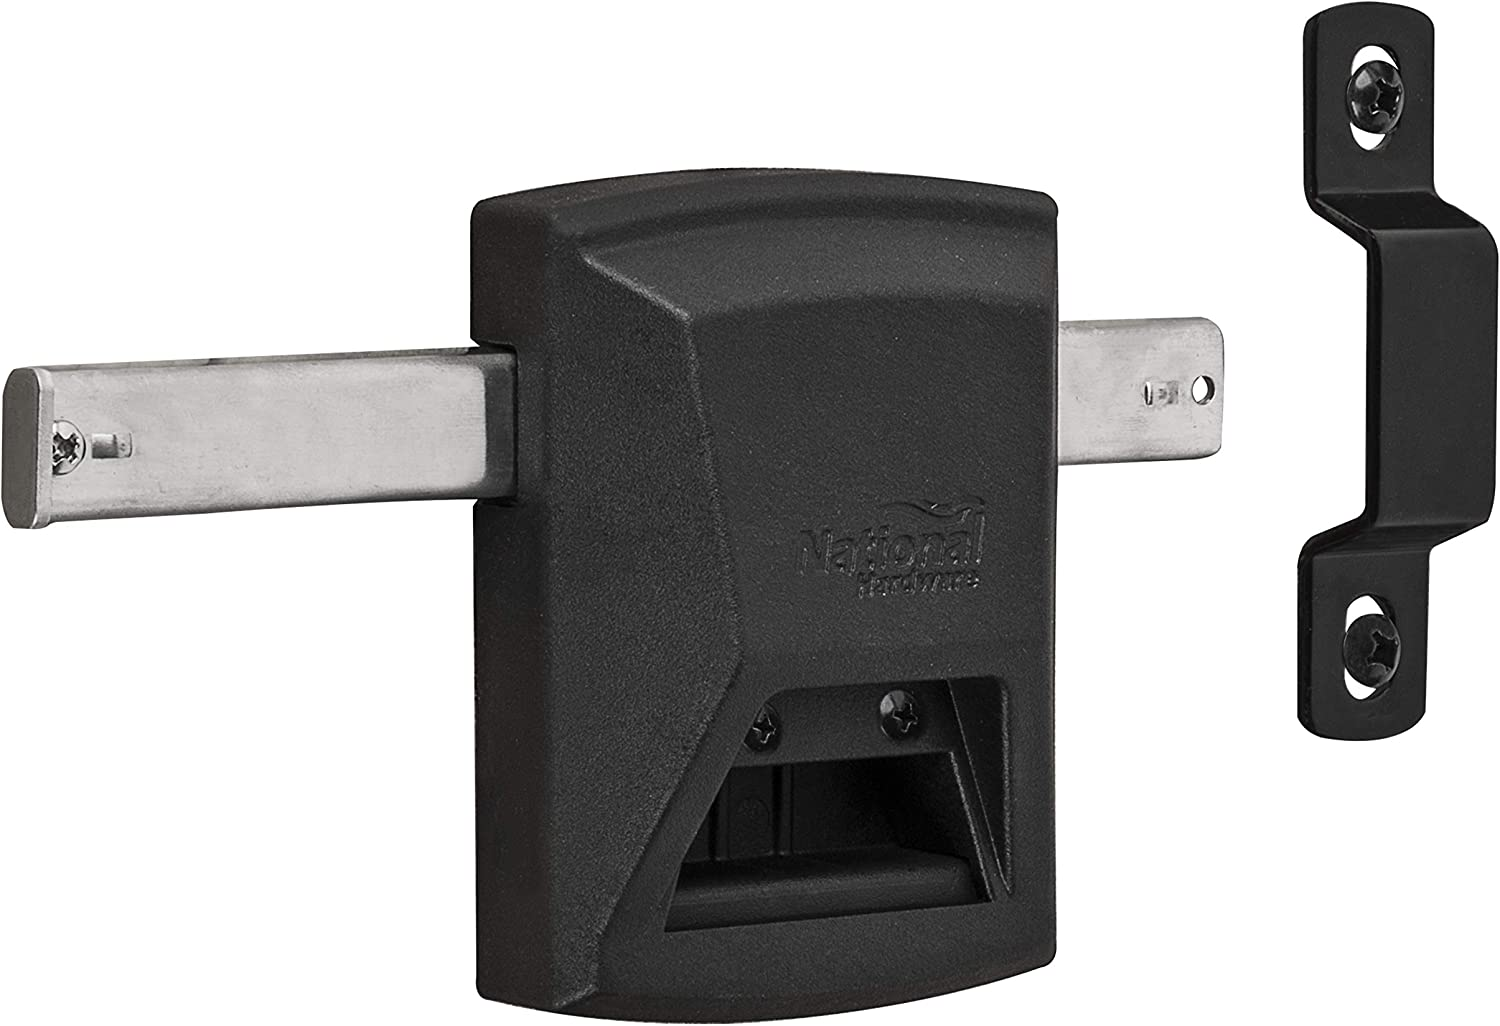 SmartKey Gate Lock N109-080 by National Hardware for Vinyl and Wooden Fences, Black